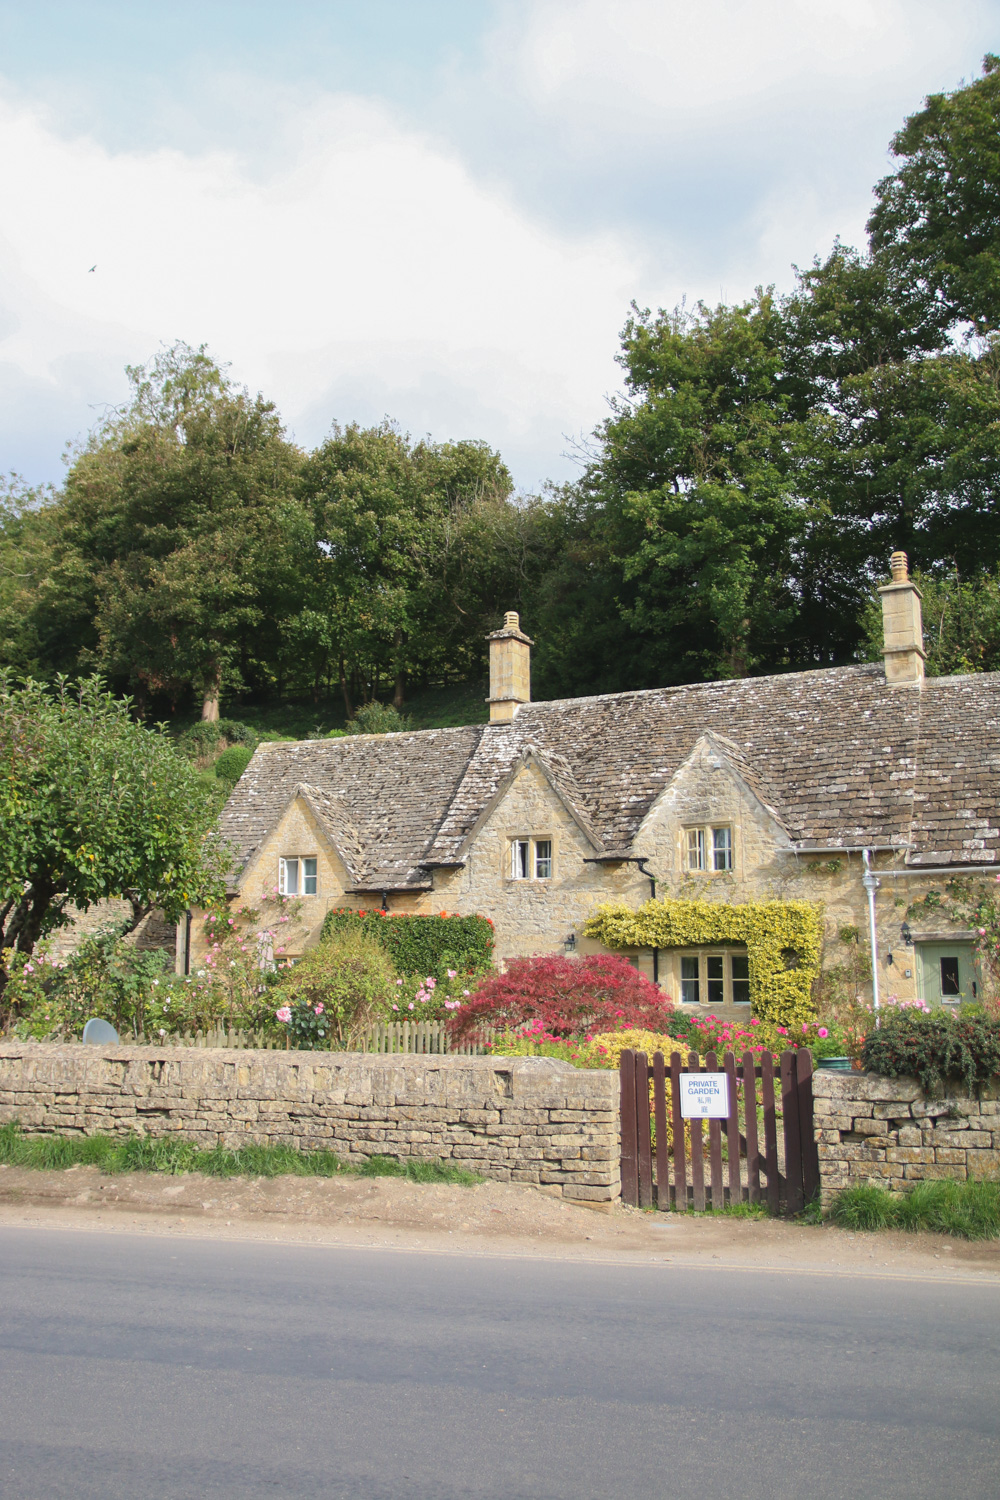 Village of Bibury in The Cotswolds